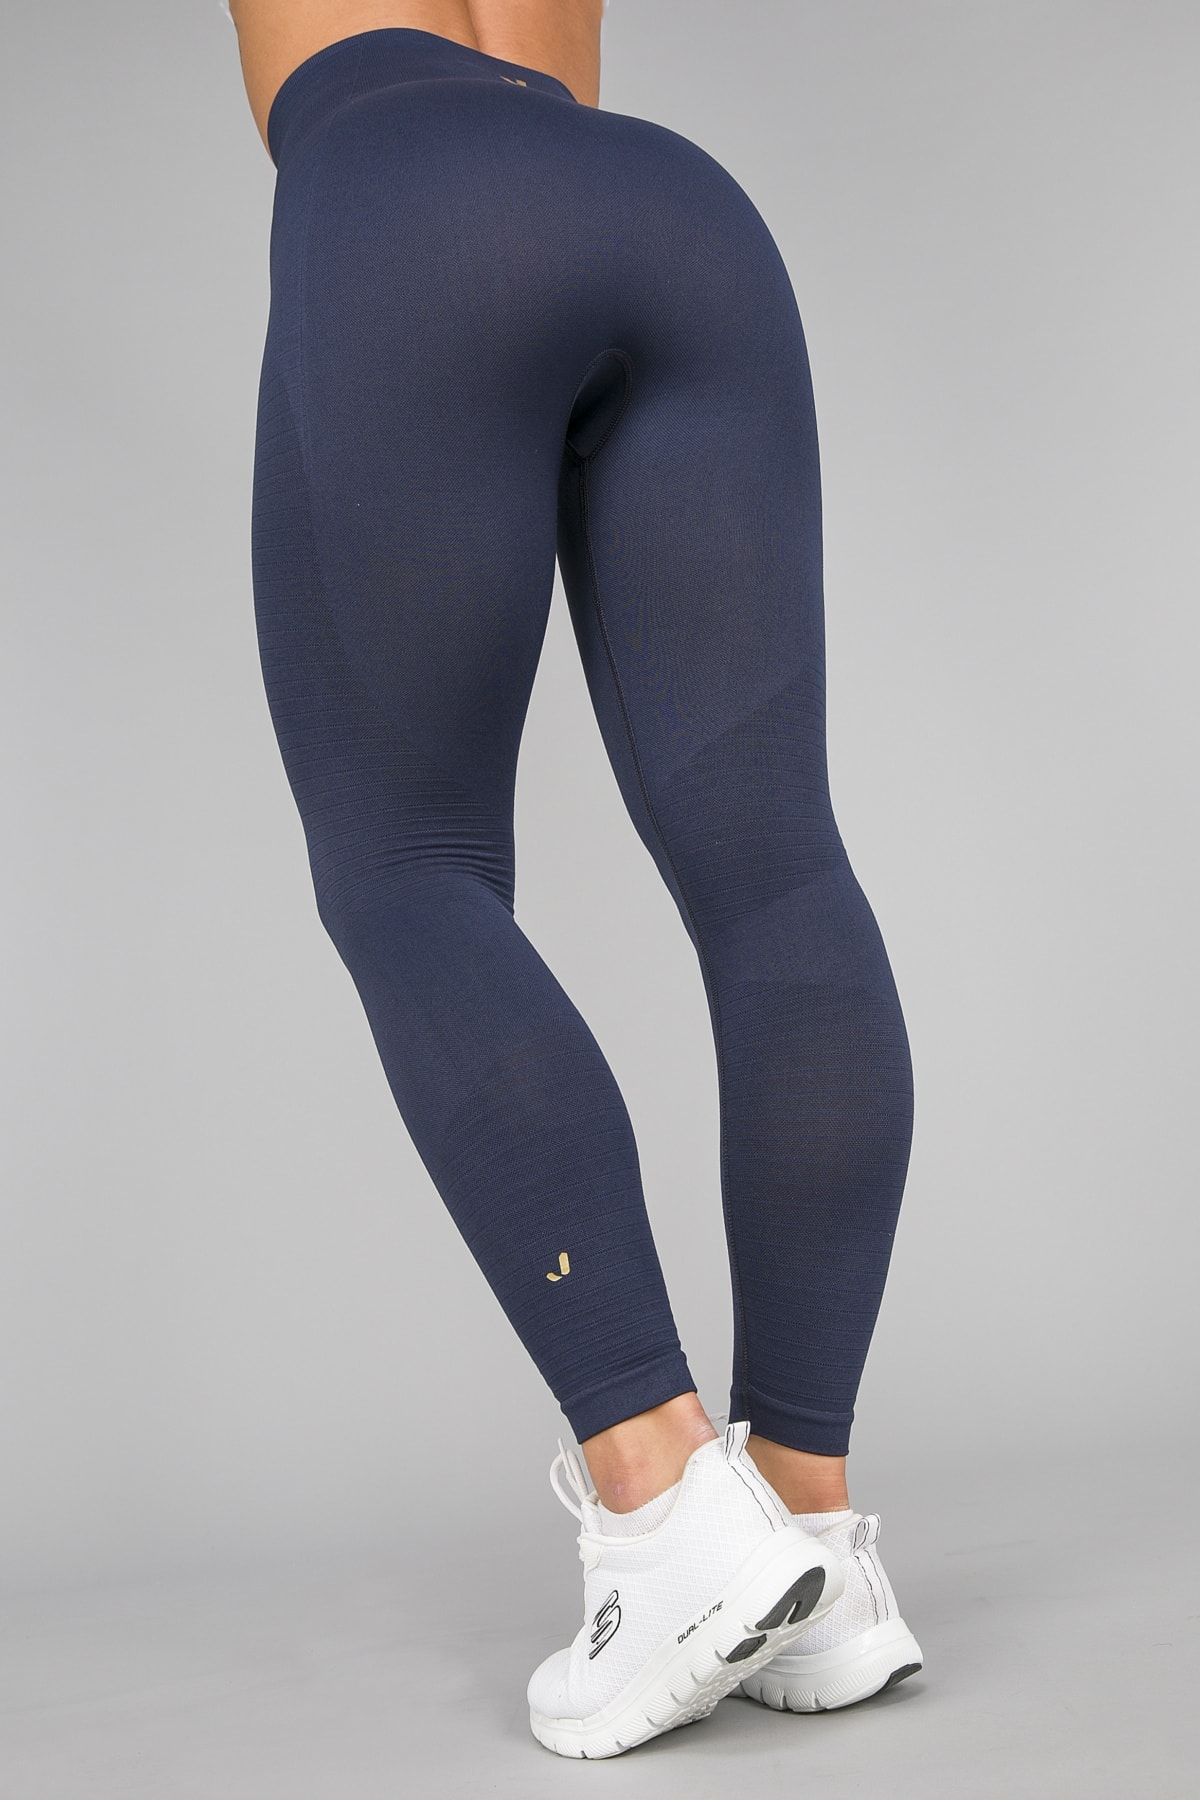 Jerf Gela 2.0 tights Navy Blue13